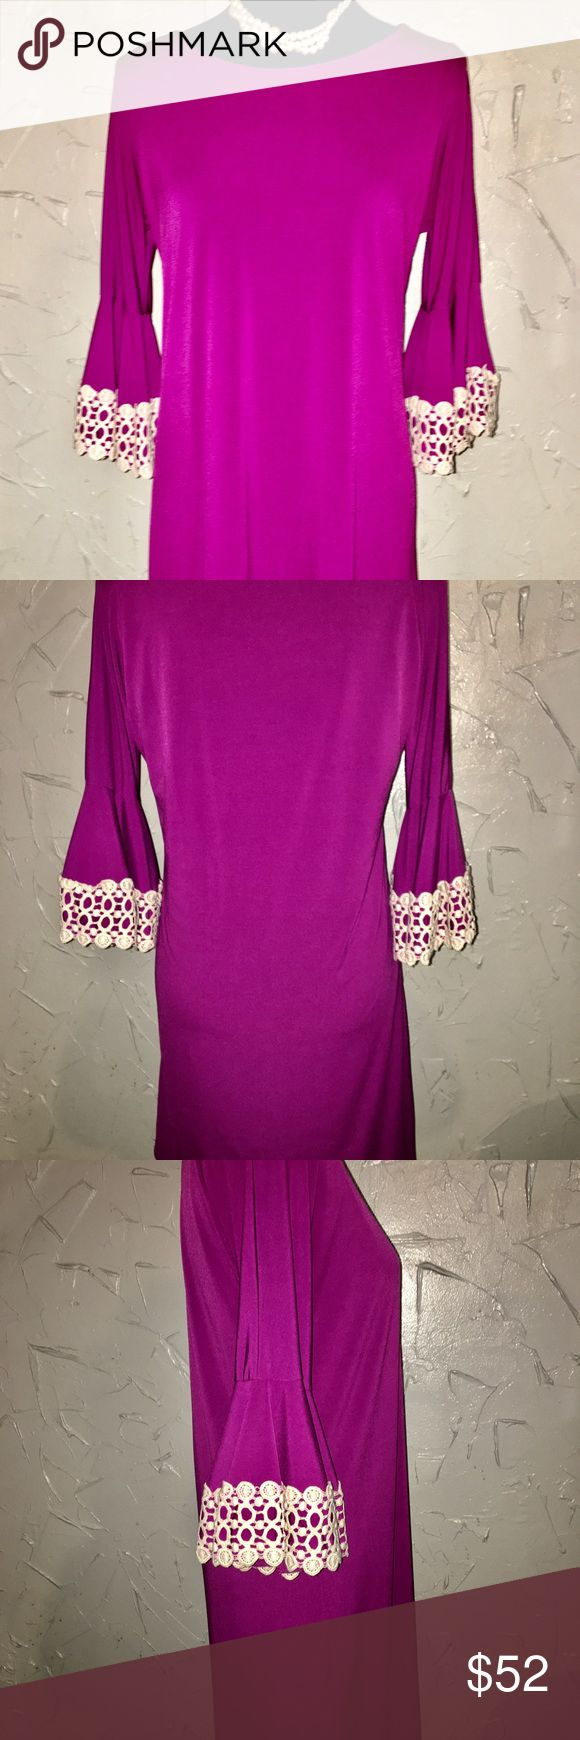 Judith March Magenta Bell Sleeve Dress Beautiful Judith March Magenta Dress has a lining underneath for added comfort! Ivory laced bell sleeves adds perfection to this dress! Like New Condition! Judith March Dresses Midi